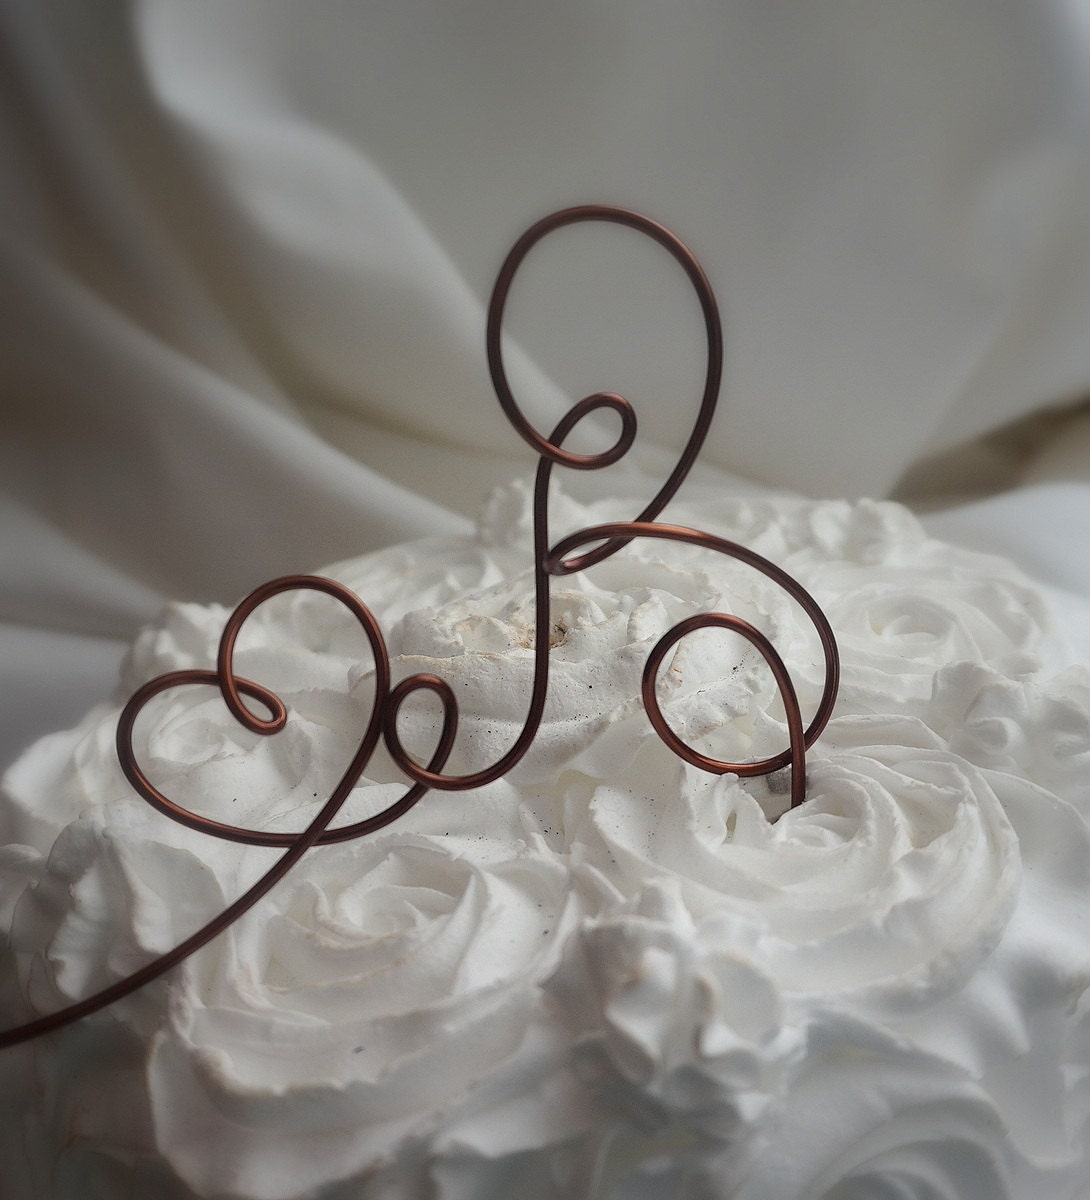 Rustic Letter Cake Topper Wedding Decor by HomesAndWeddings